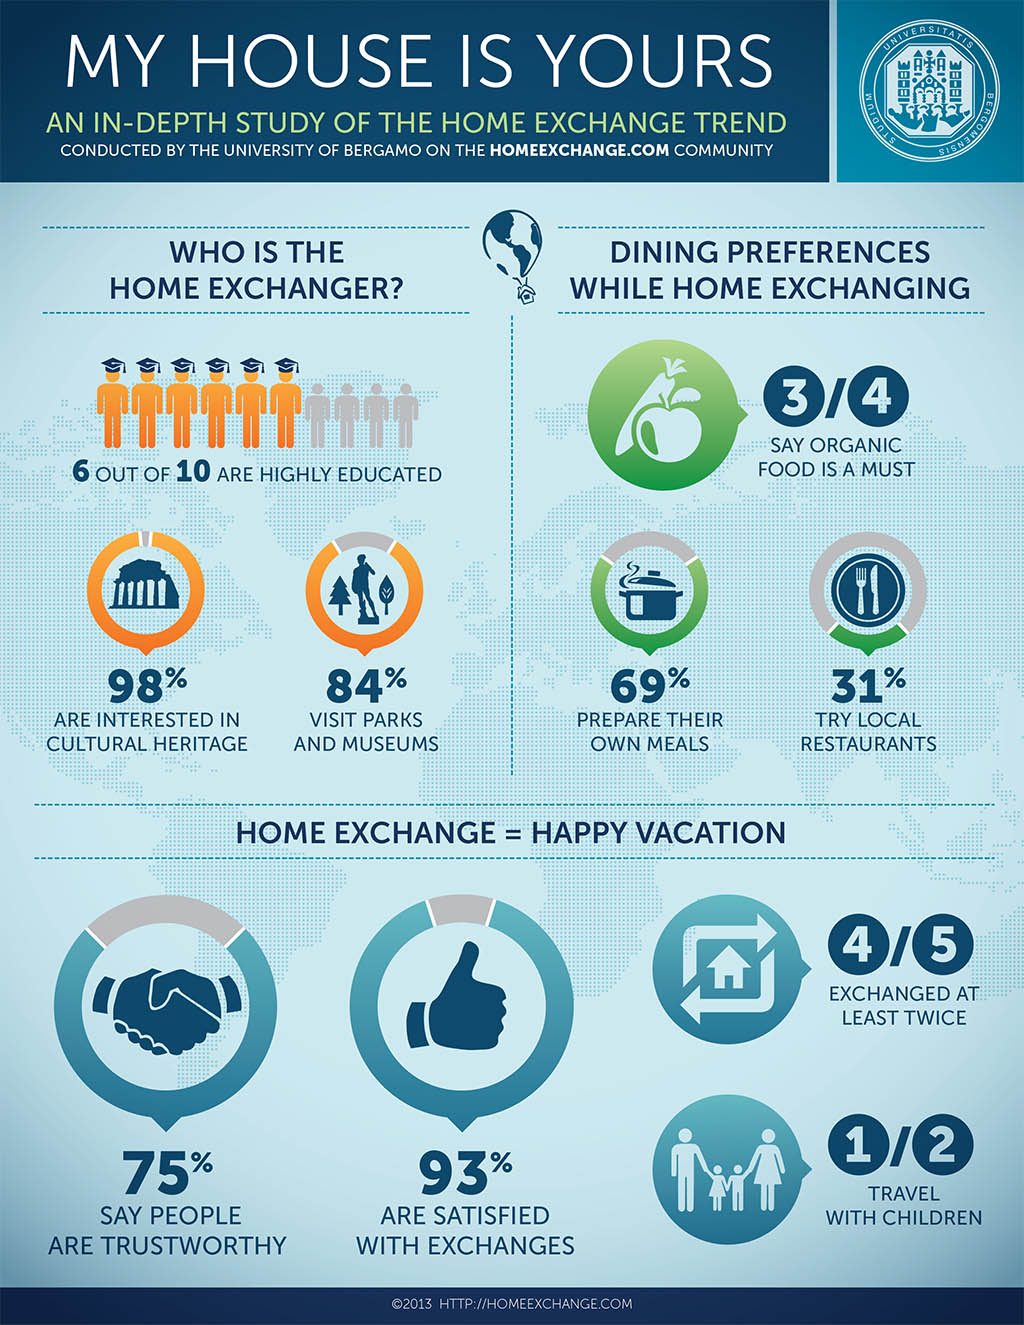 home exchange bergamo study infographic